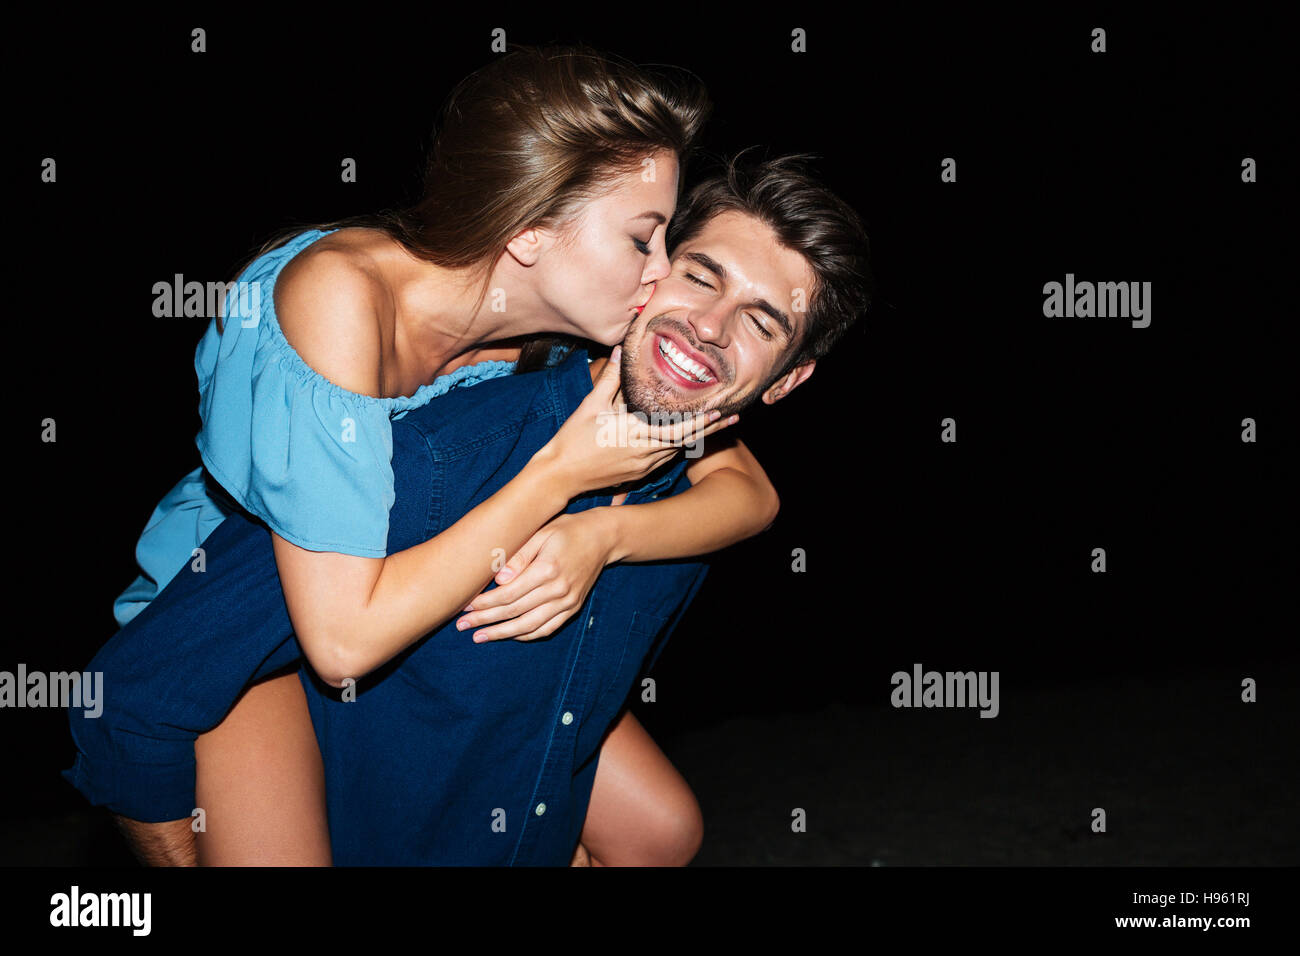 Happy young couple kissing and having fun on the beach at night - Stock Image